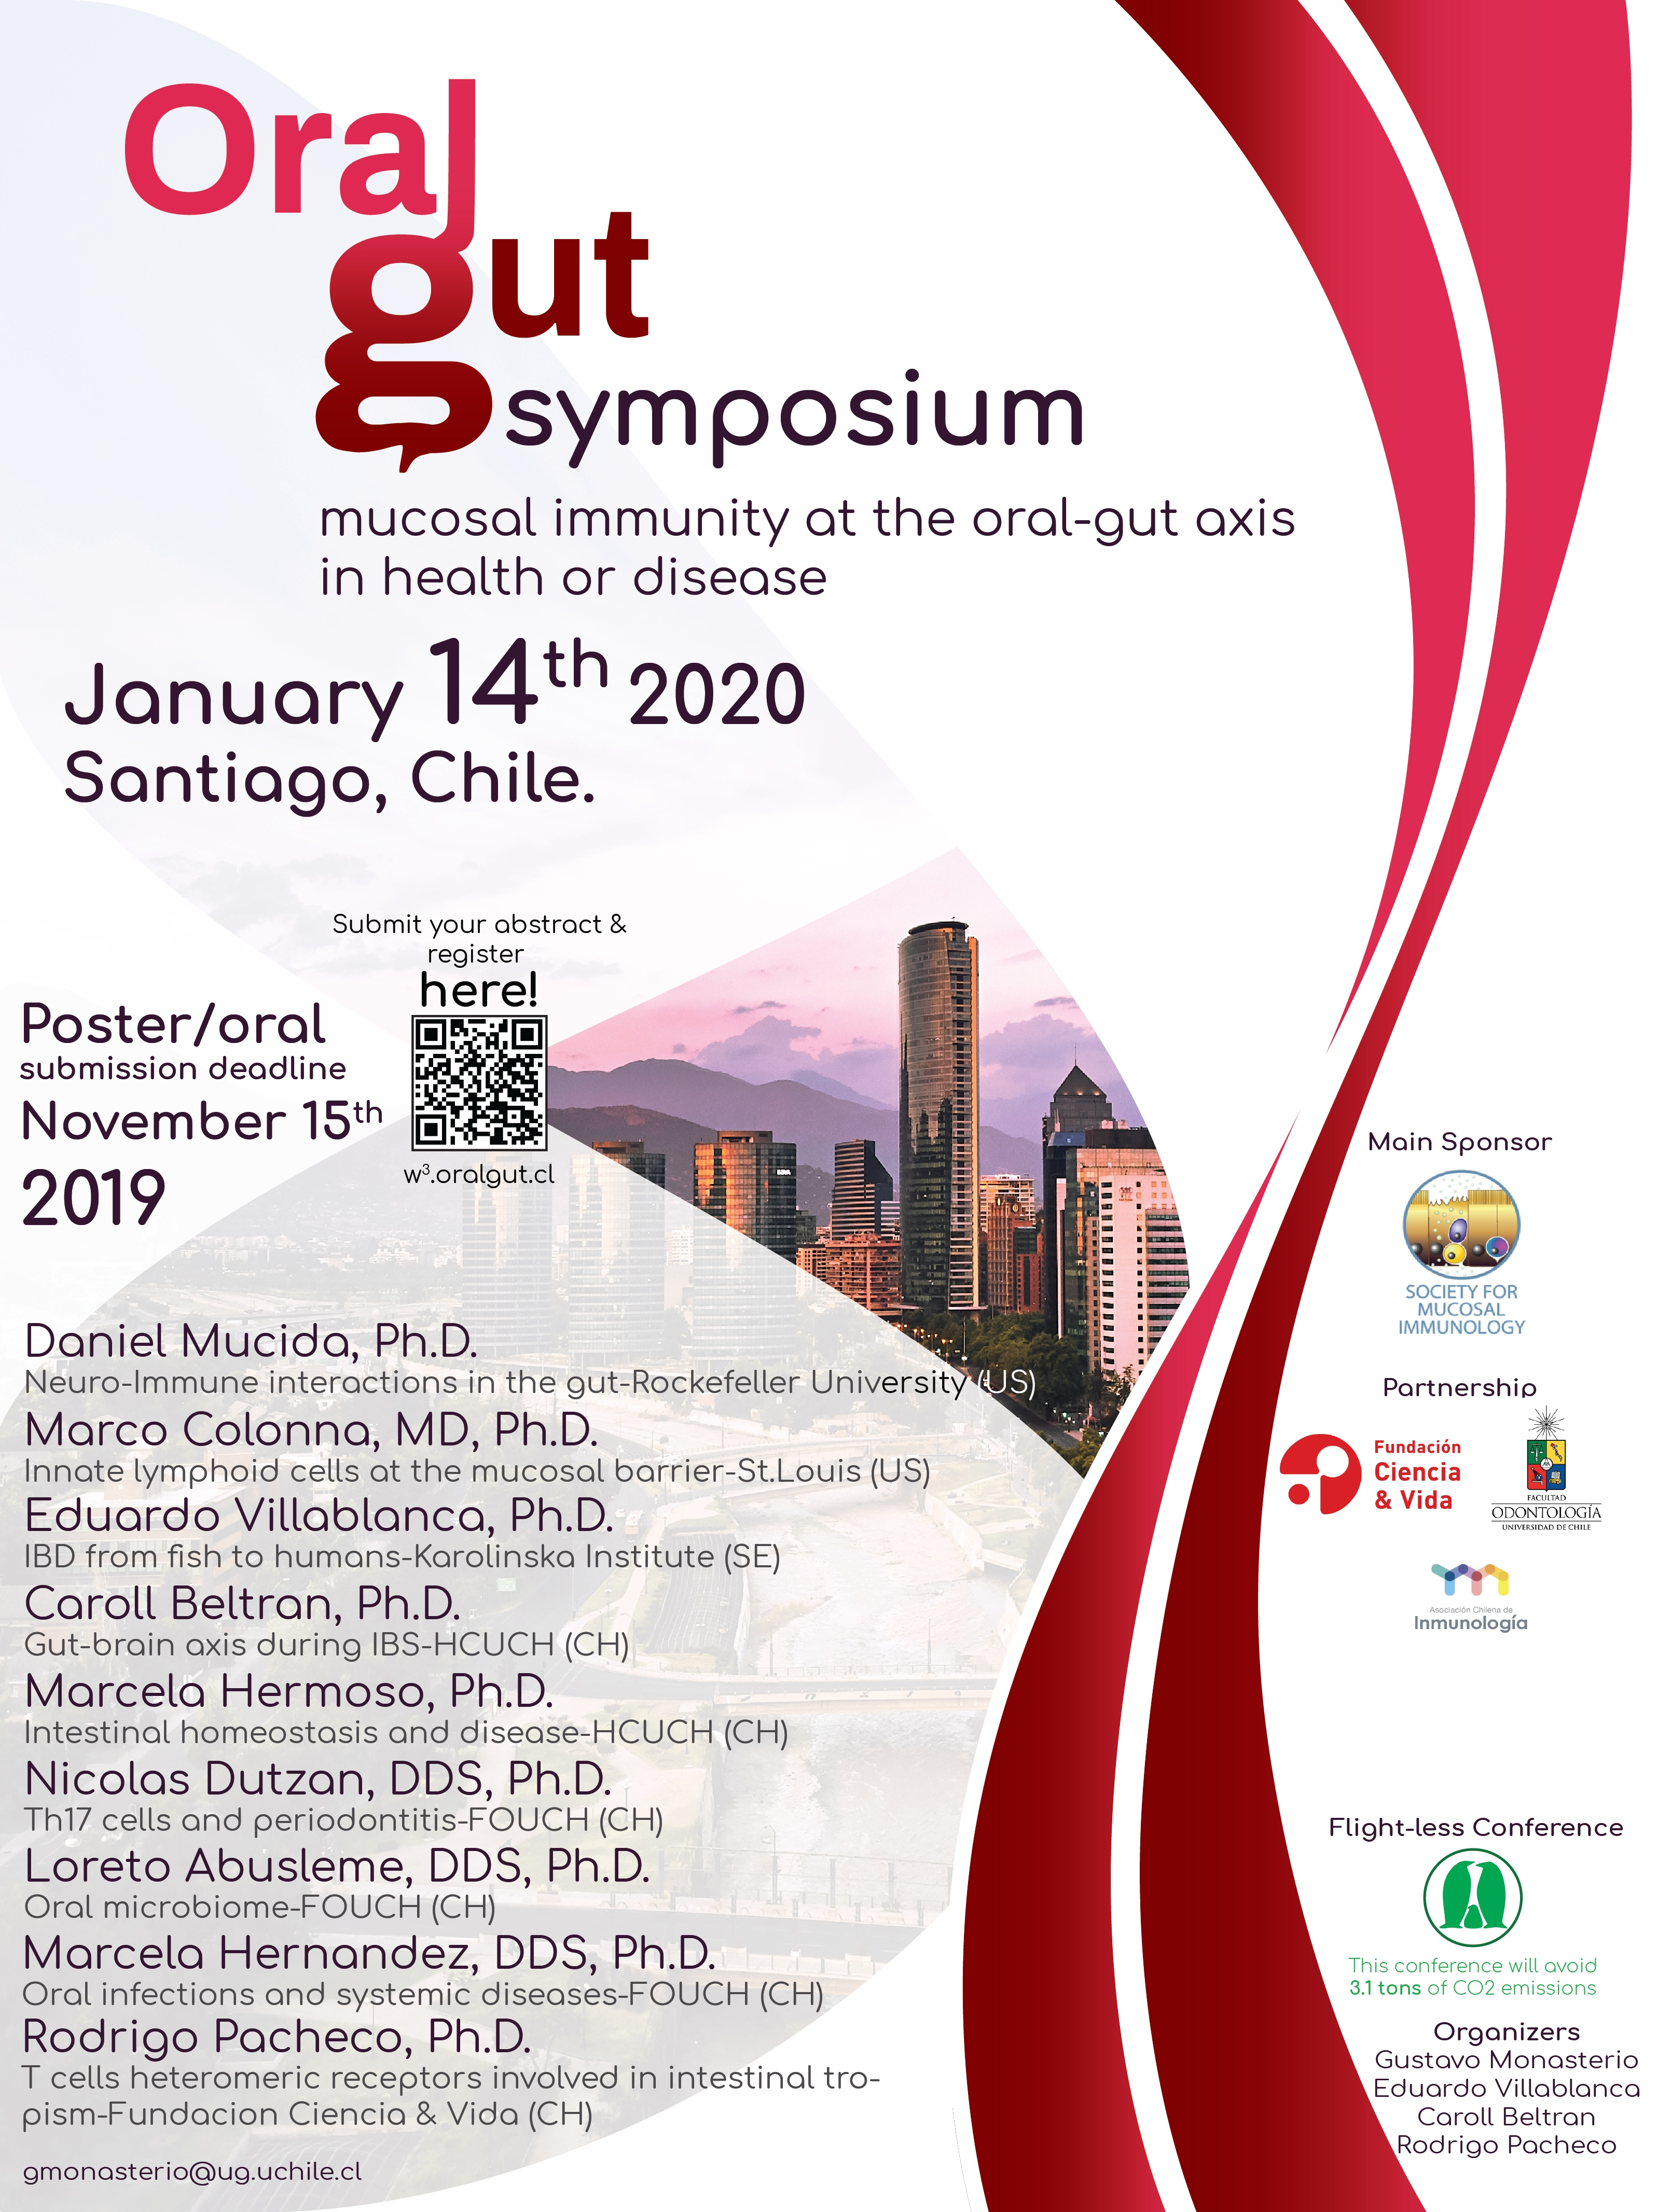 """First International Symposium """"Mucosal immunity at the oral-gut axis in health or disease"""" graphic"""